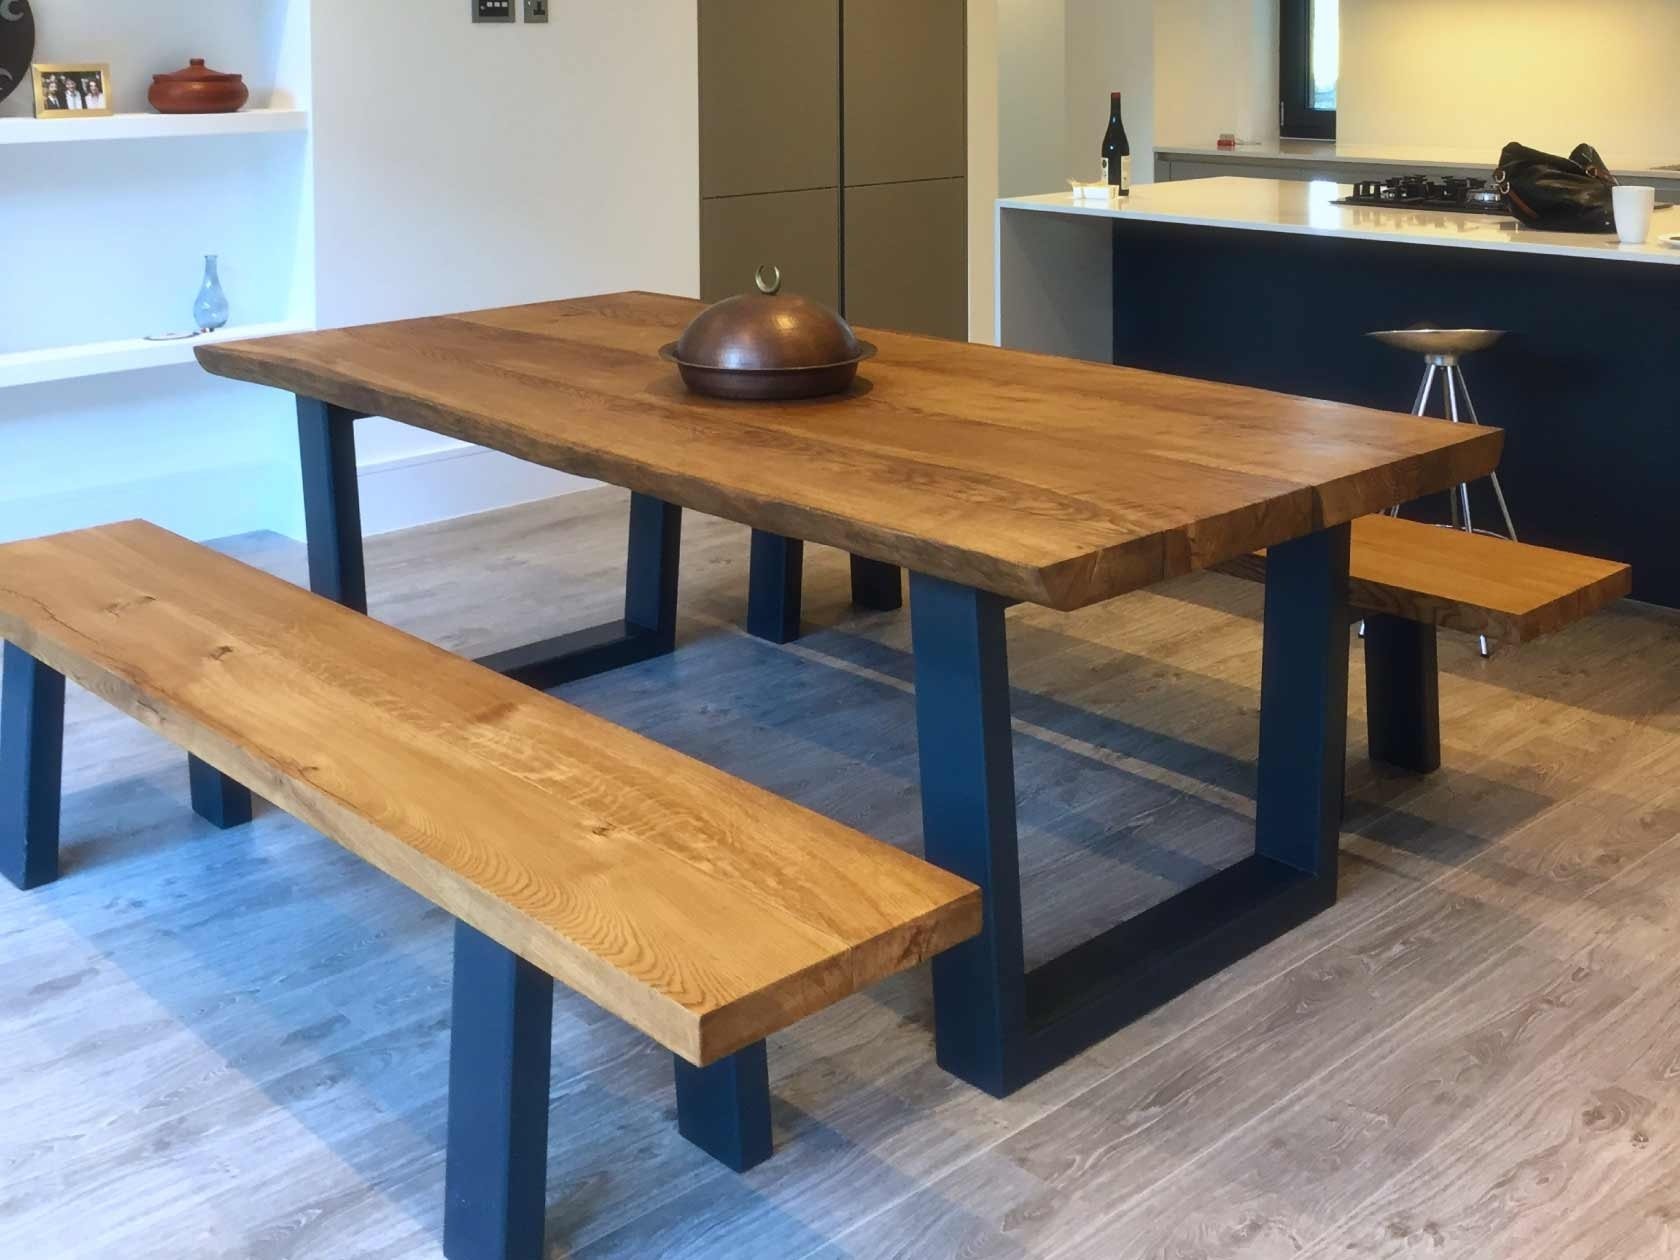 Rustic Dining Tables With Most Recently Released Rustic Dining Table Set With Bench (View 18 of 25)